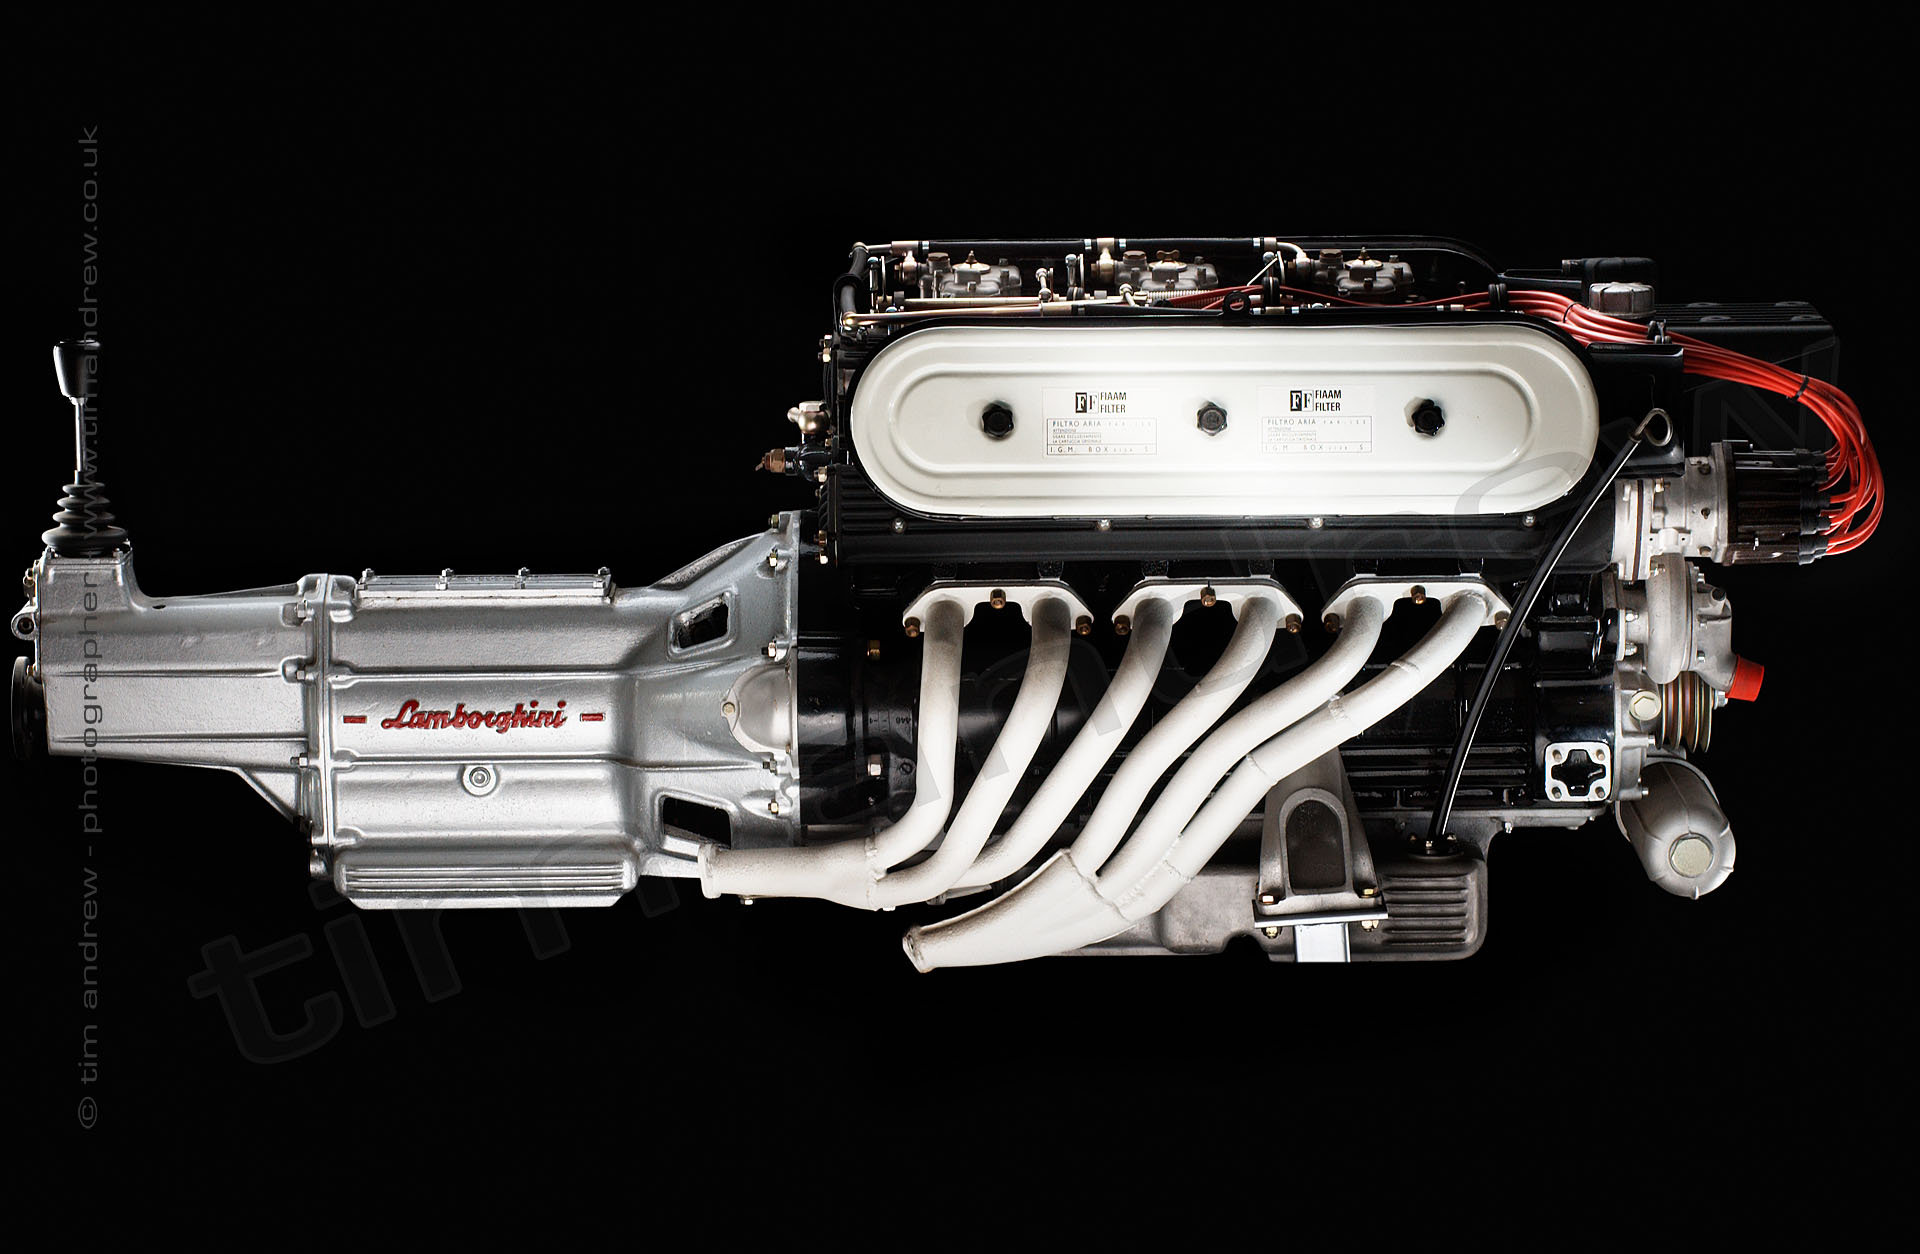 Lamborghini V12 engine and gearbox